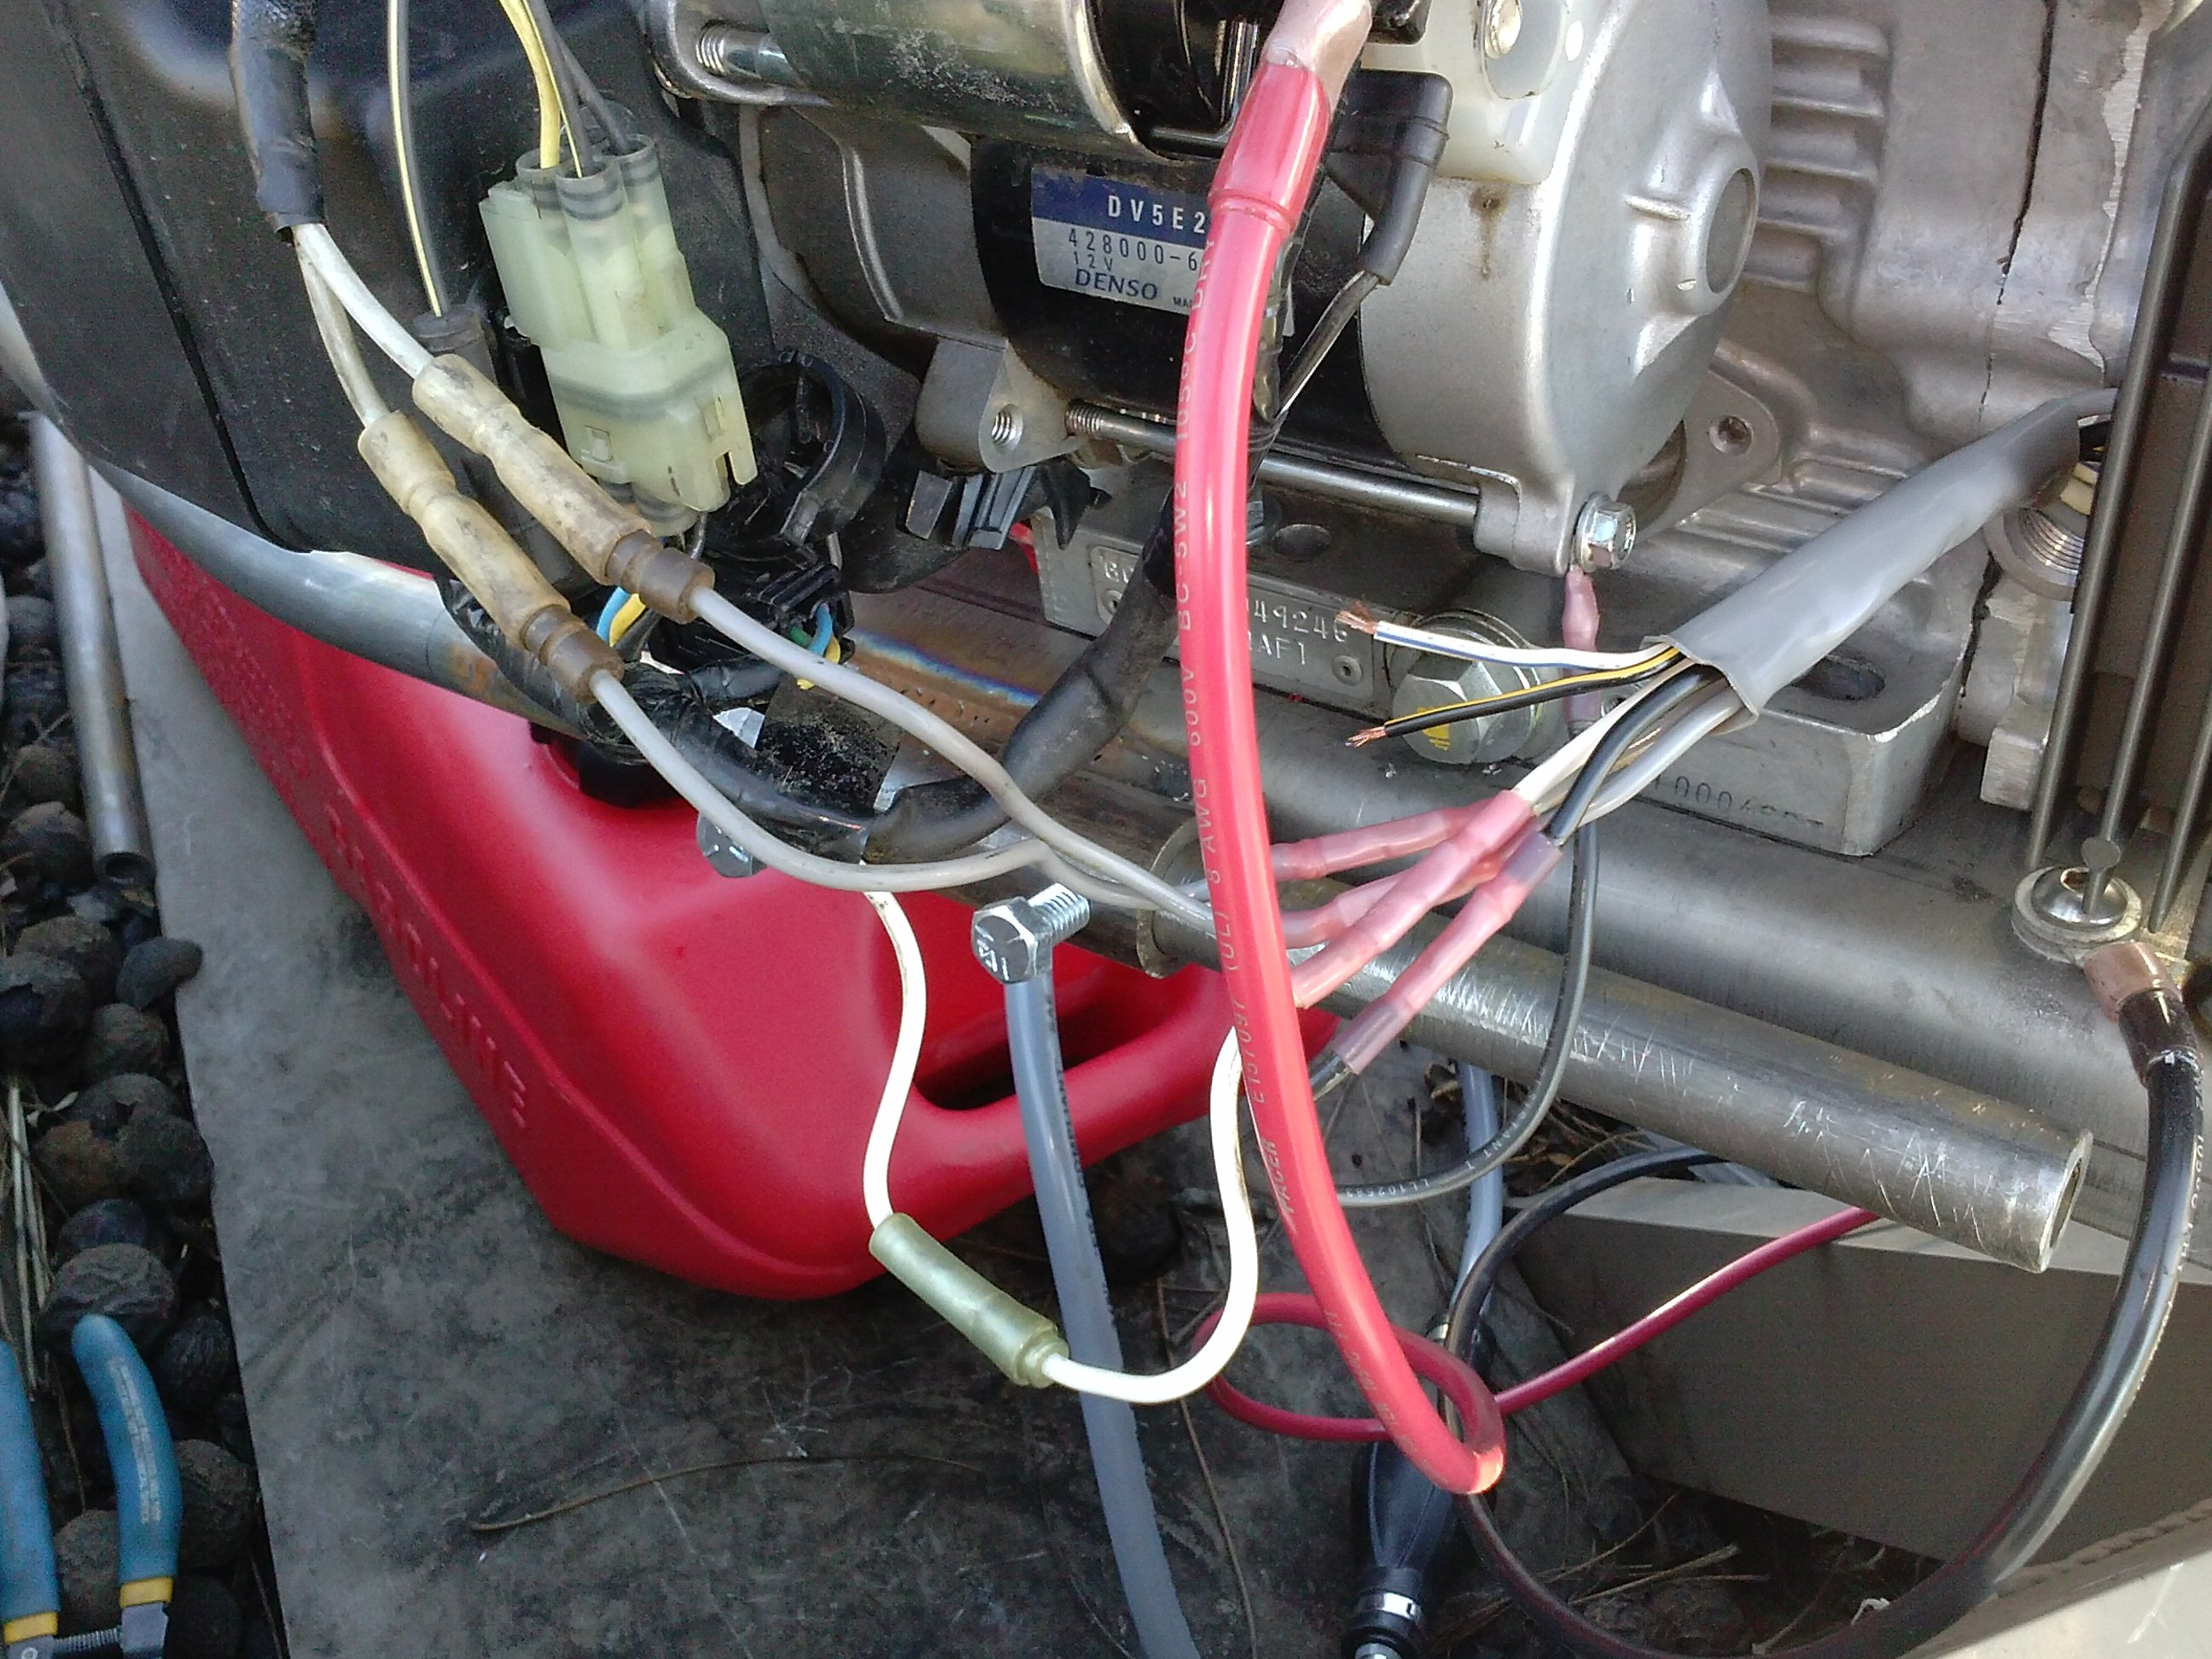 I Need Help Troubleshooting The Charging System On A Honda Gx630 With The 17amp Charging System